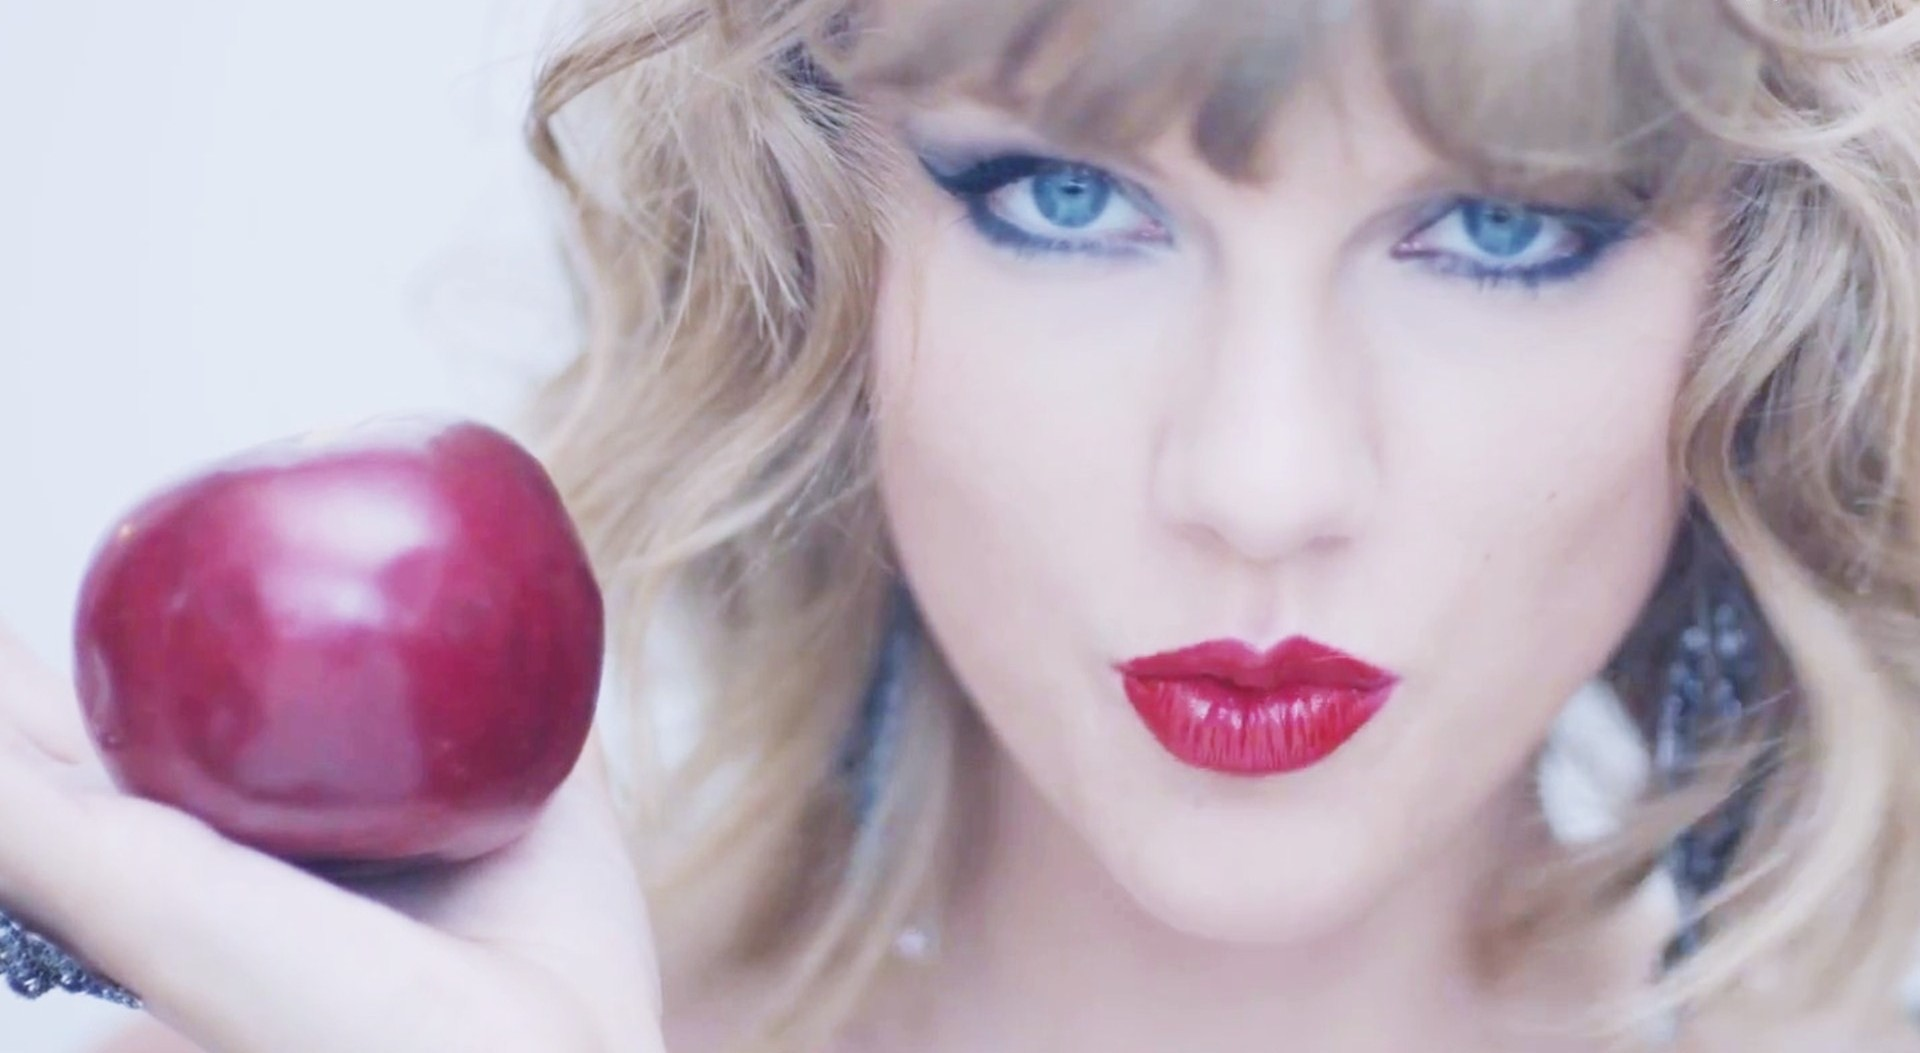 red-lips-and-apple-taylor-swift-wallpaper-7984-2